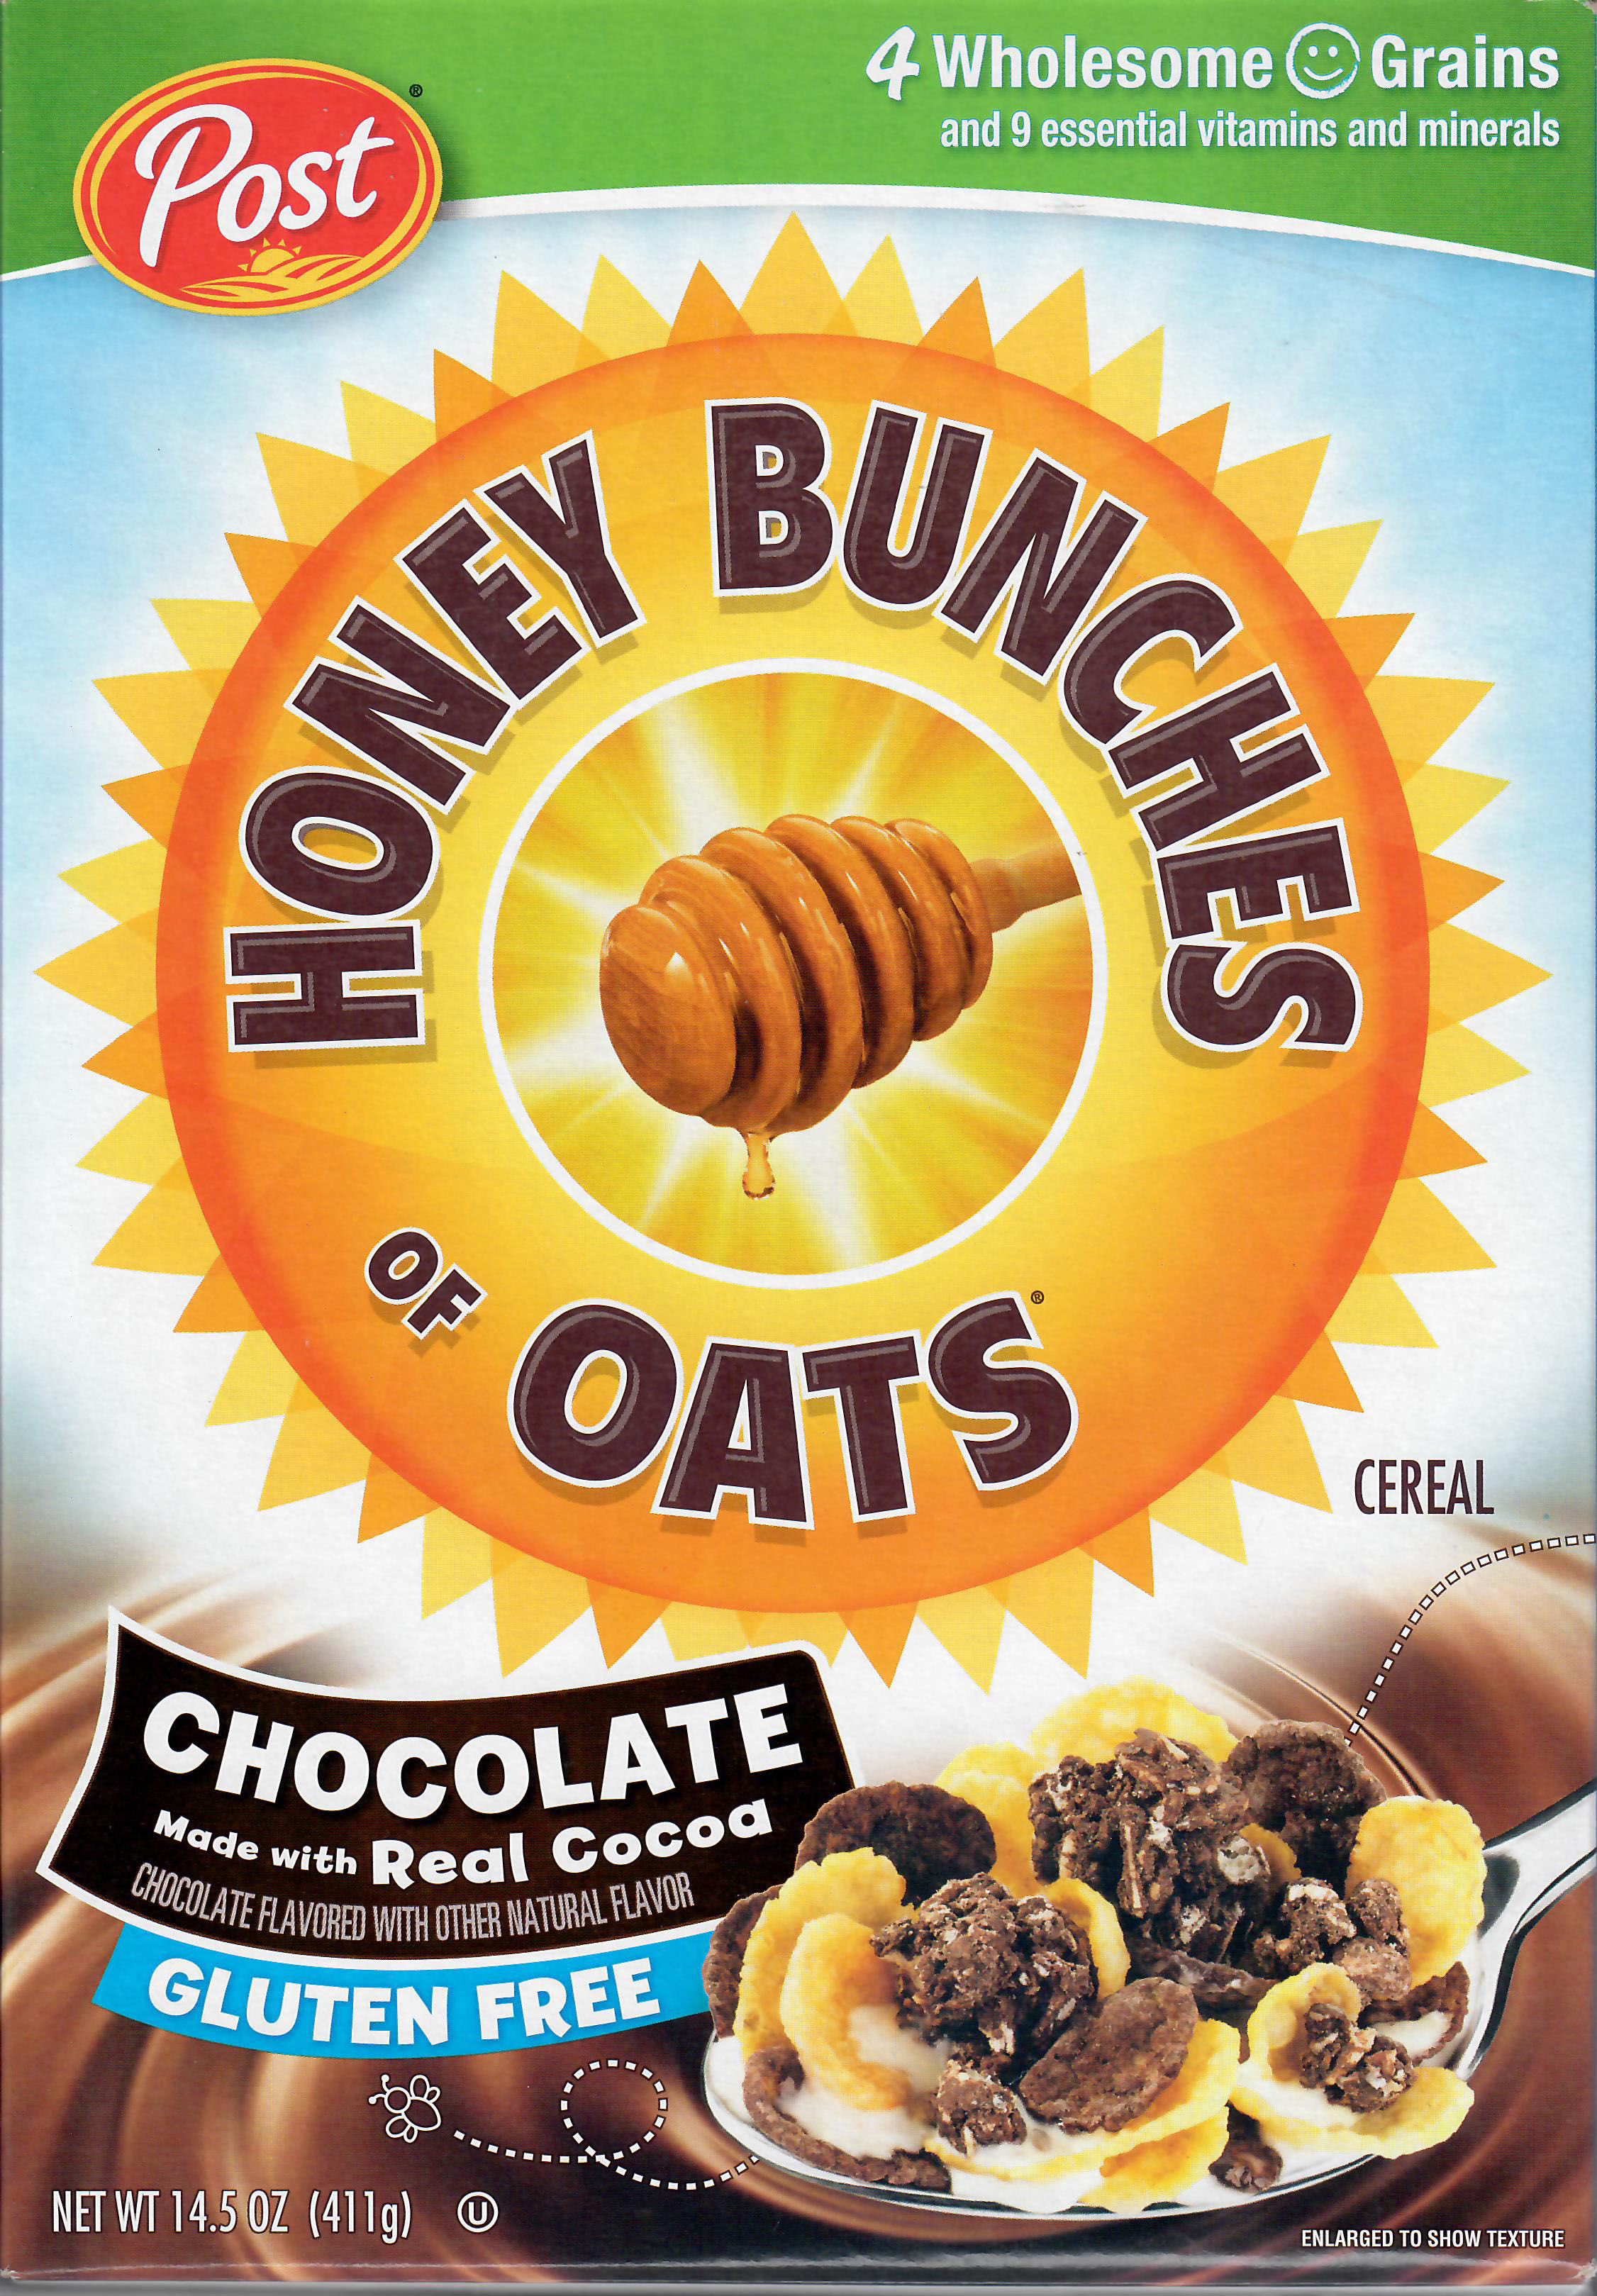 Post Honey Bunches of Oats - Chocolate